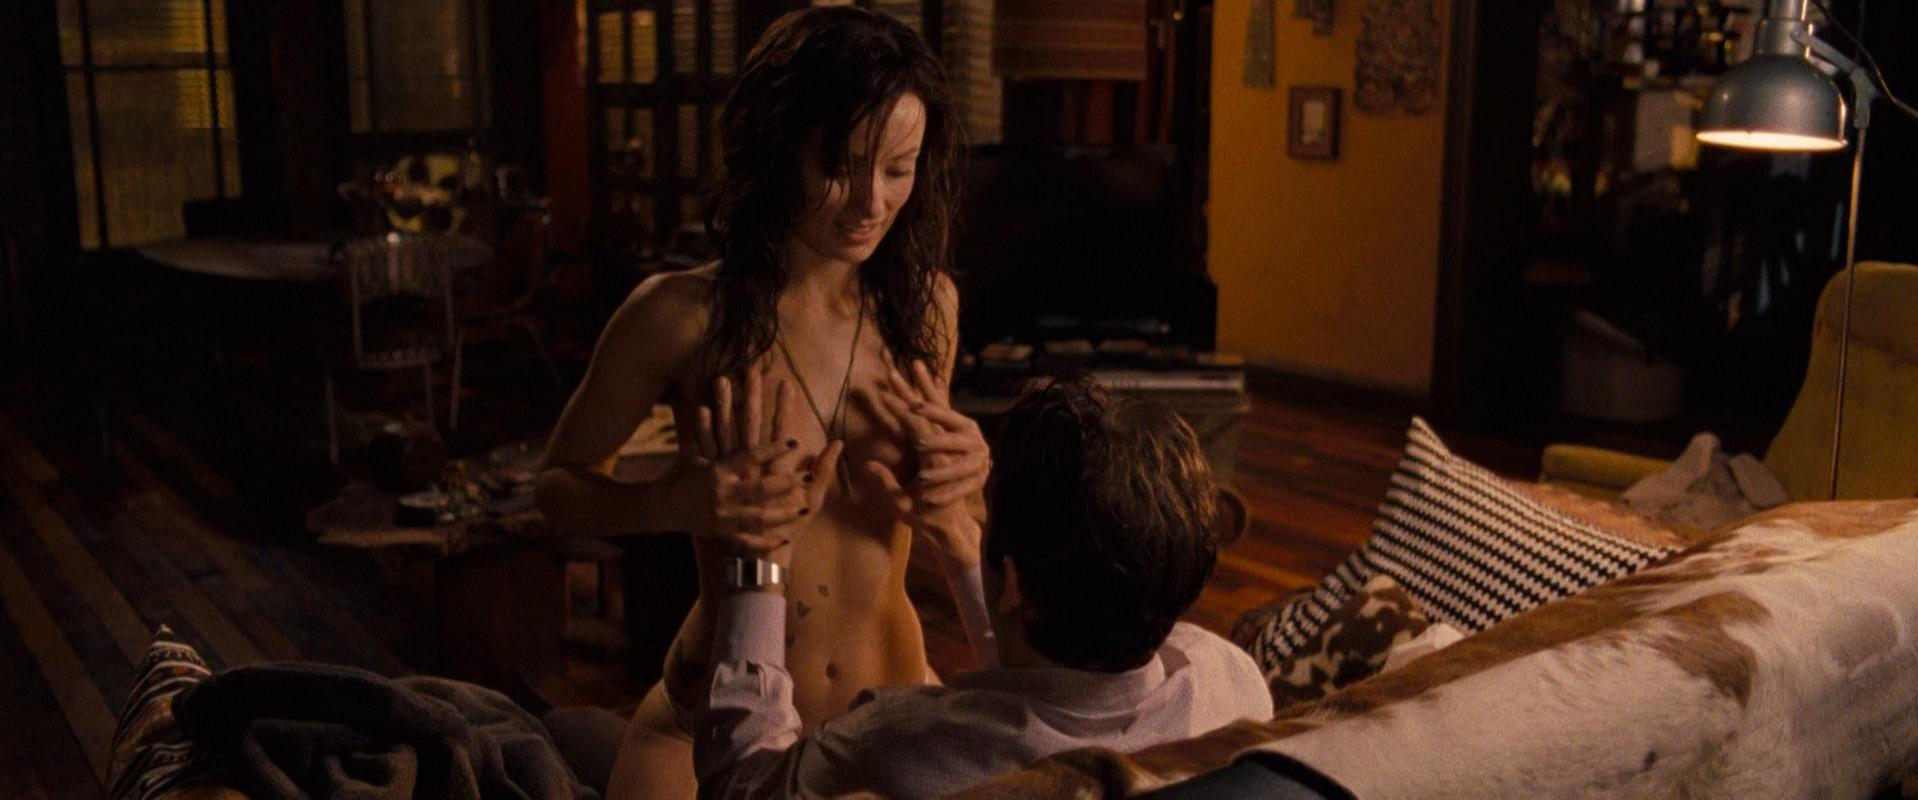 Olivia Wilde Nude The Change Up